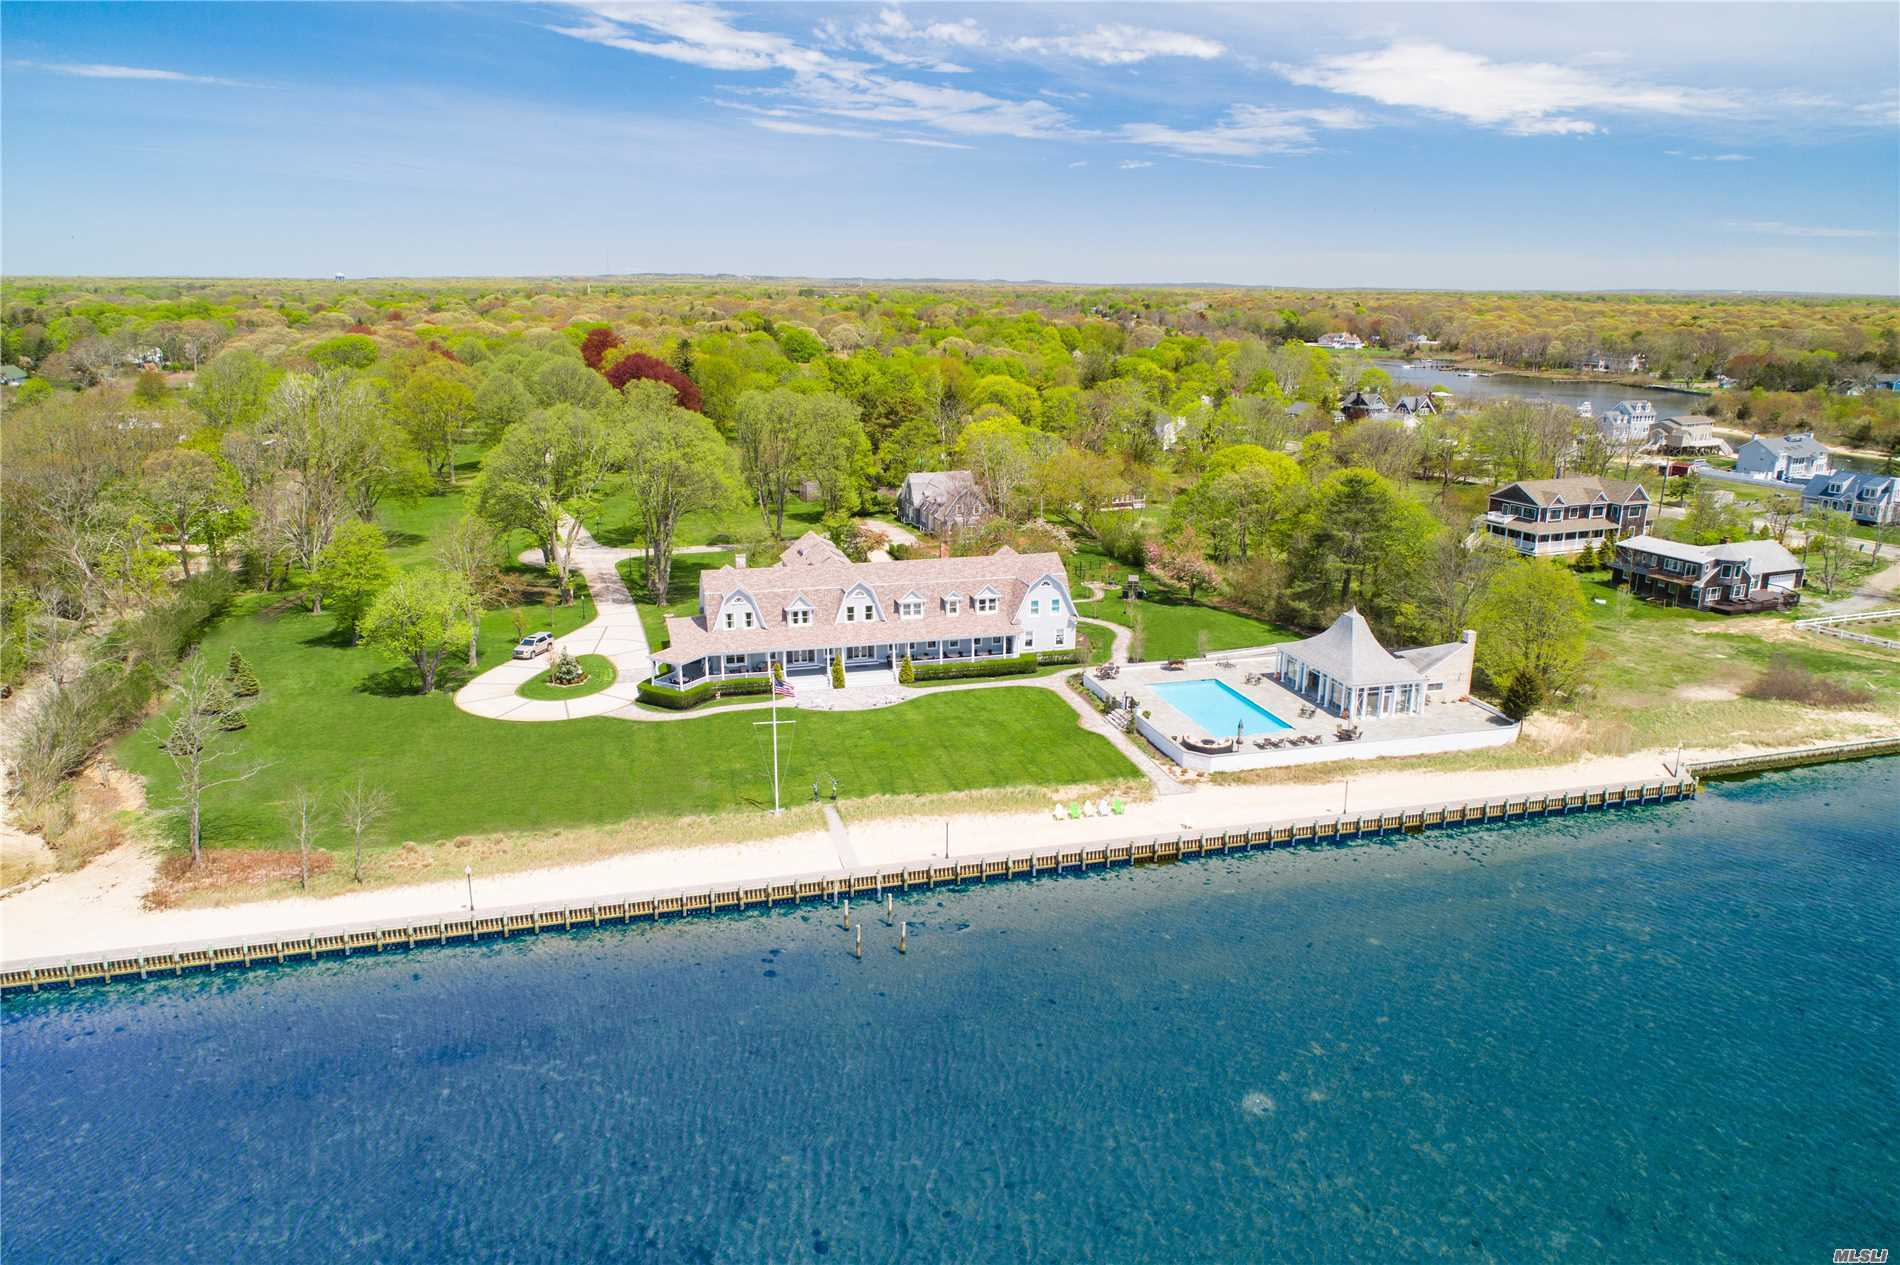 Spectacular 10, 000 Sqft 8 Acre Bayfront Estate Overlooking Moriches Bay Offering 425 Ft Of Water Frontage And Private Beach! A True Entertainers And Boaters Paradise Offering Panoramic Views And Wide Open Bay And Ocean Access . Main House Offers 14 Beds, 17 Baths, Multiple Entertaining Spaces, Large Oversized Kitchen, Library, Formal Dining Room And Wrap Around Porch. Enjoy Privacy Galore And Summer Like No Other With Your 20X50 Ft Heated Saltwaterpool And Glass Enclosed Pagoda Style Pool House.